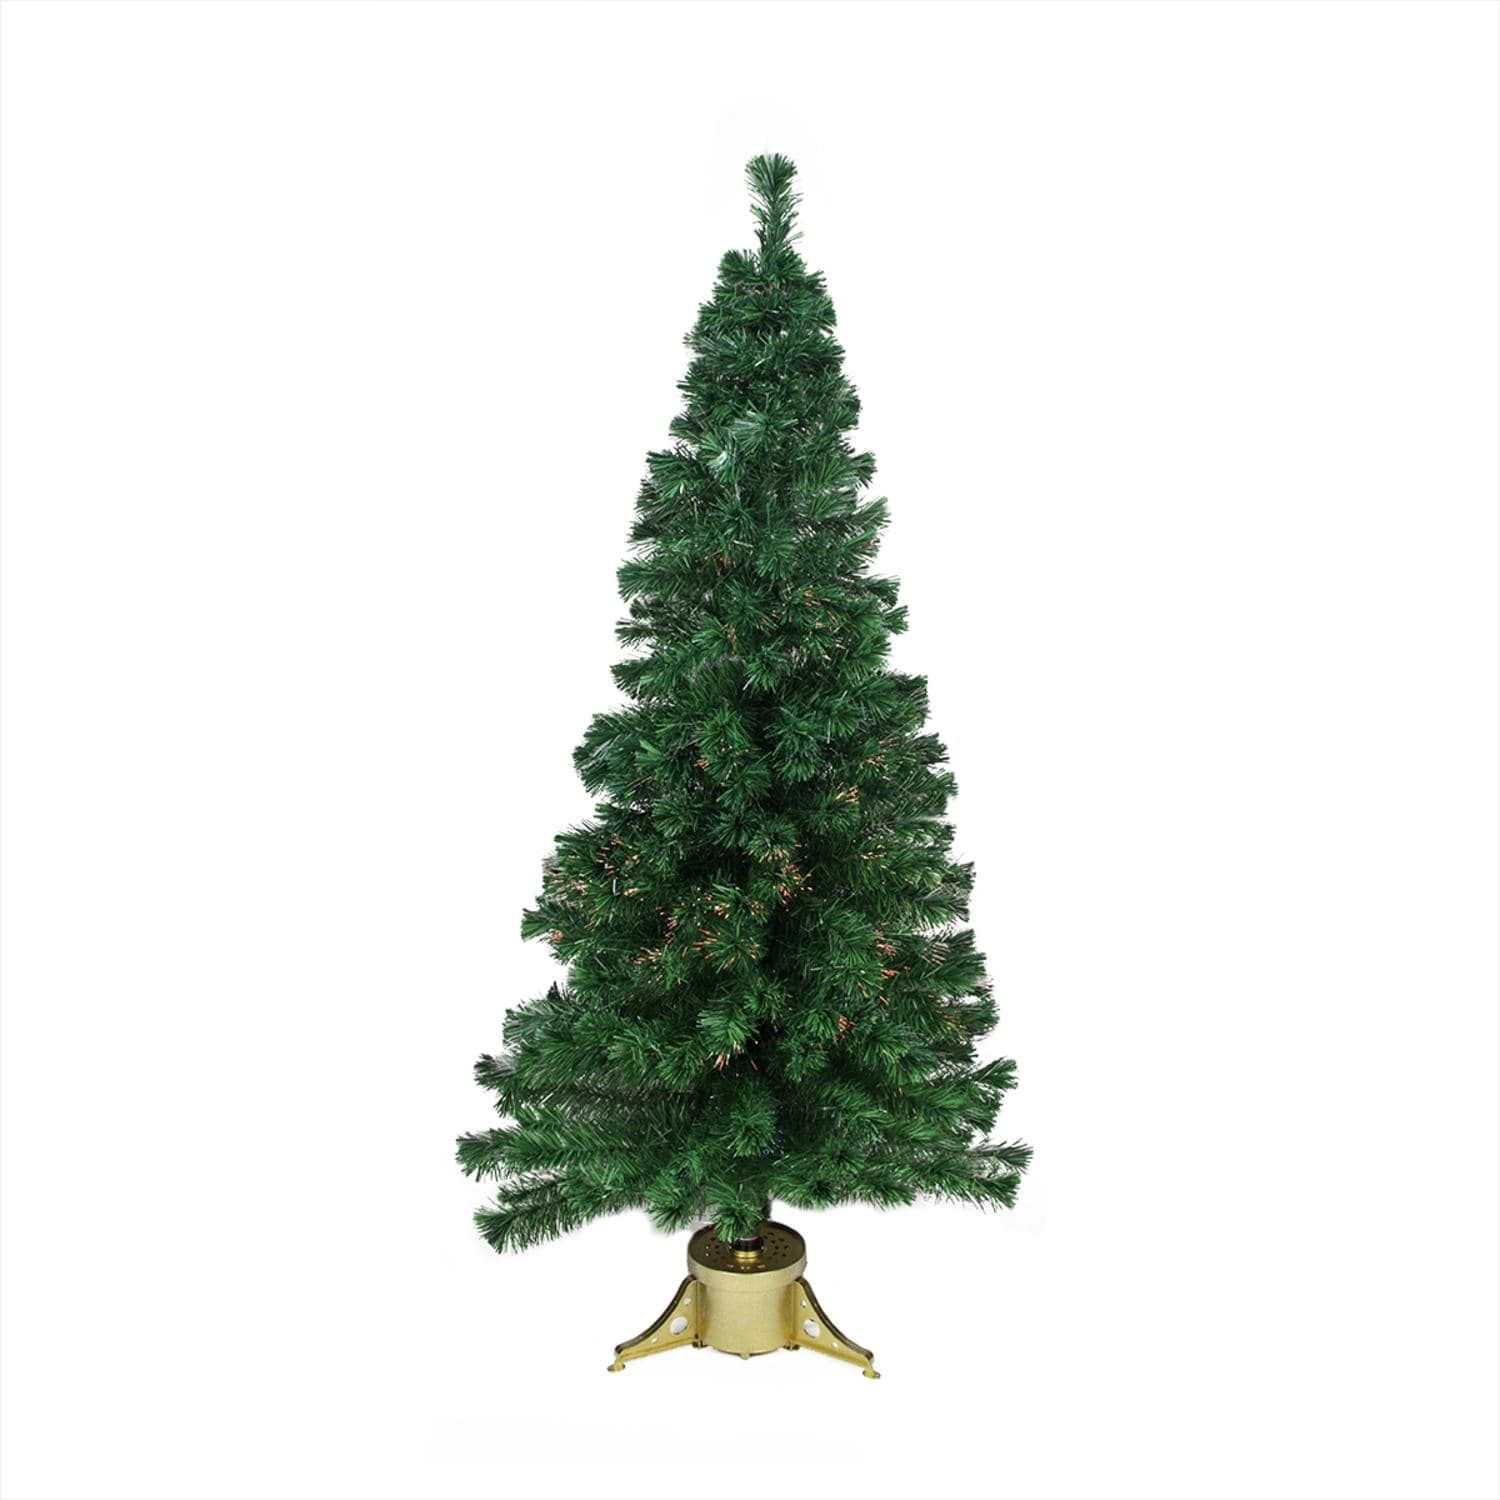 Best Deal On Artificial Christmas Trees: 7' Pre-Lit Color Changing Fiber Optic Artificial Christmas